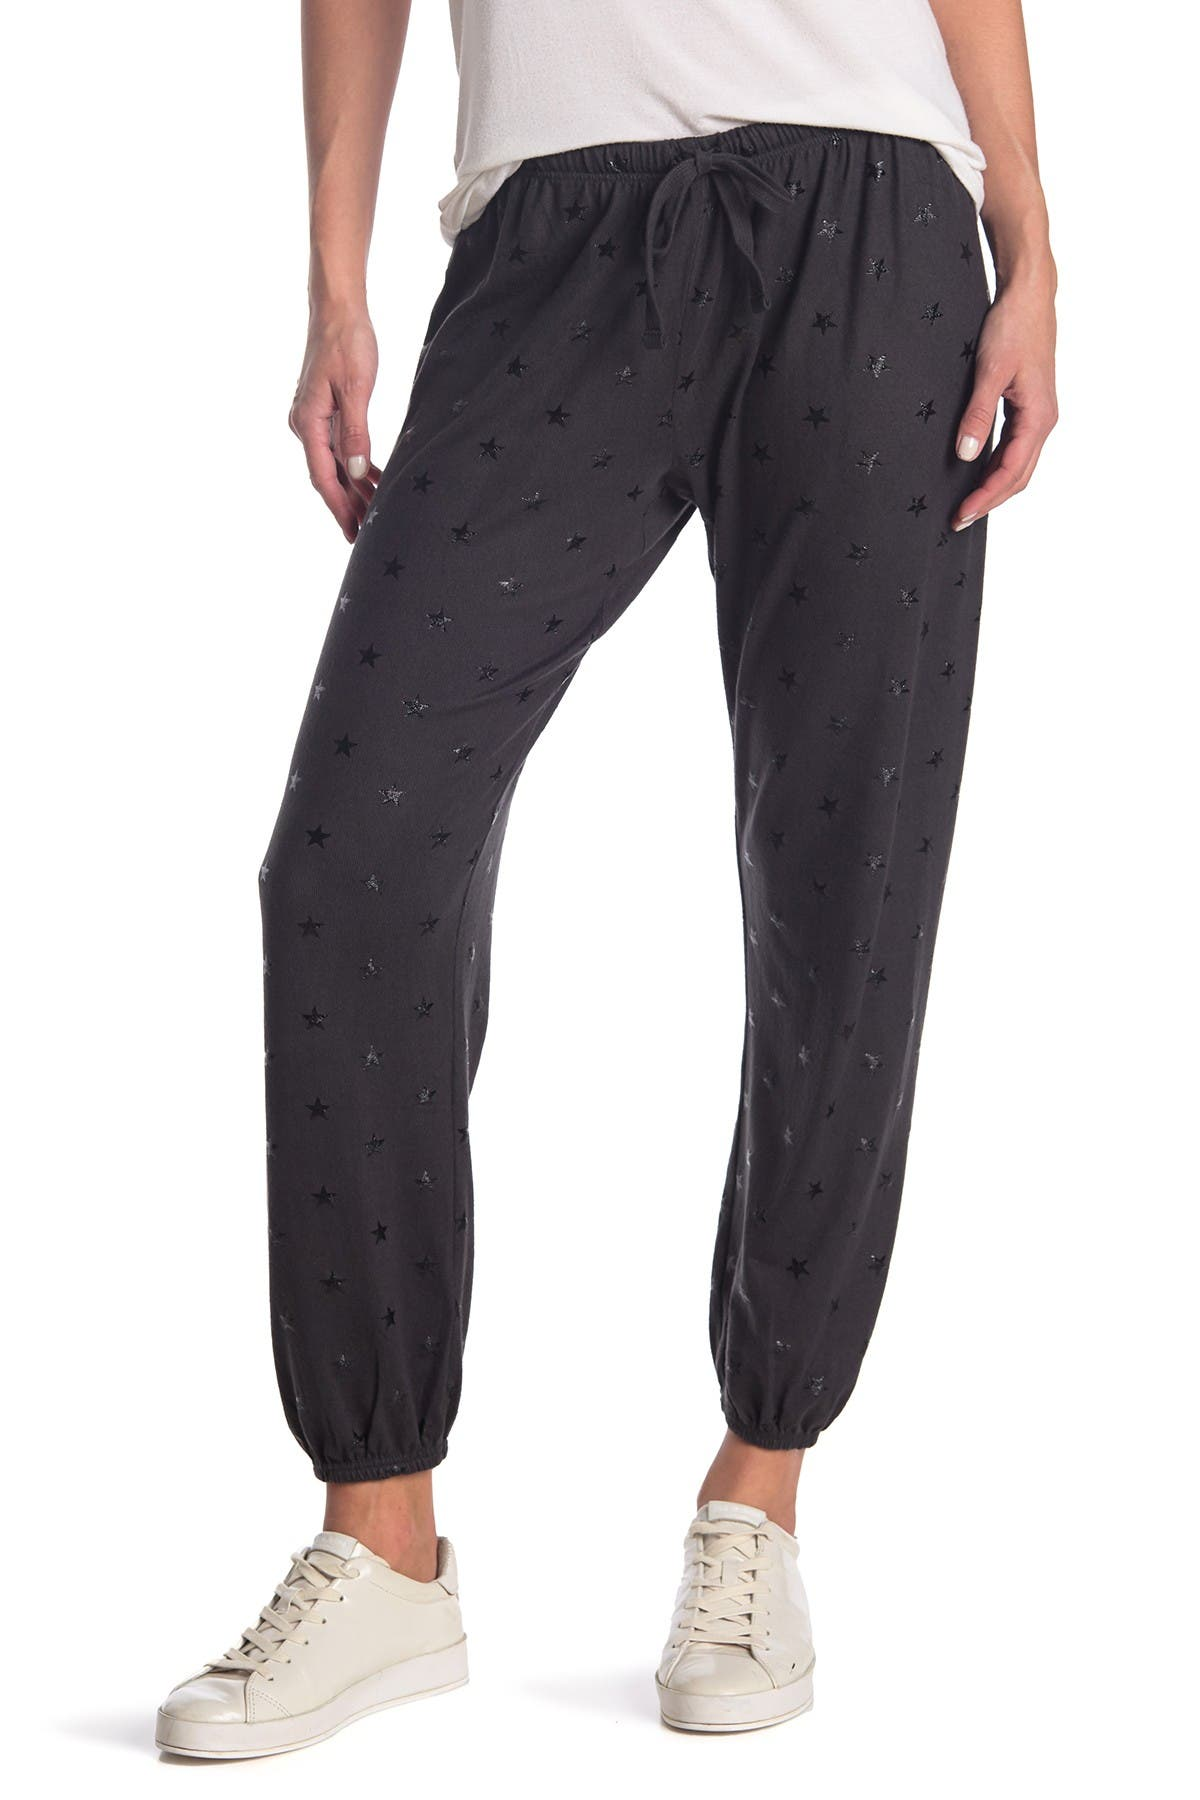 Image of ROW A Foil Star Joggers